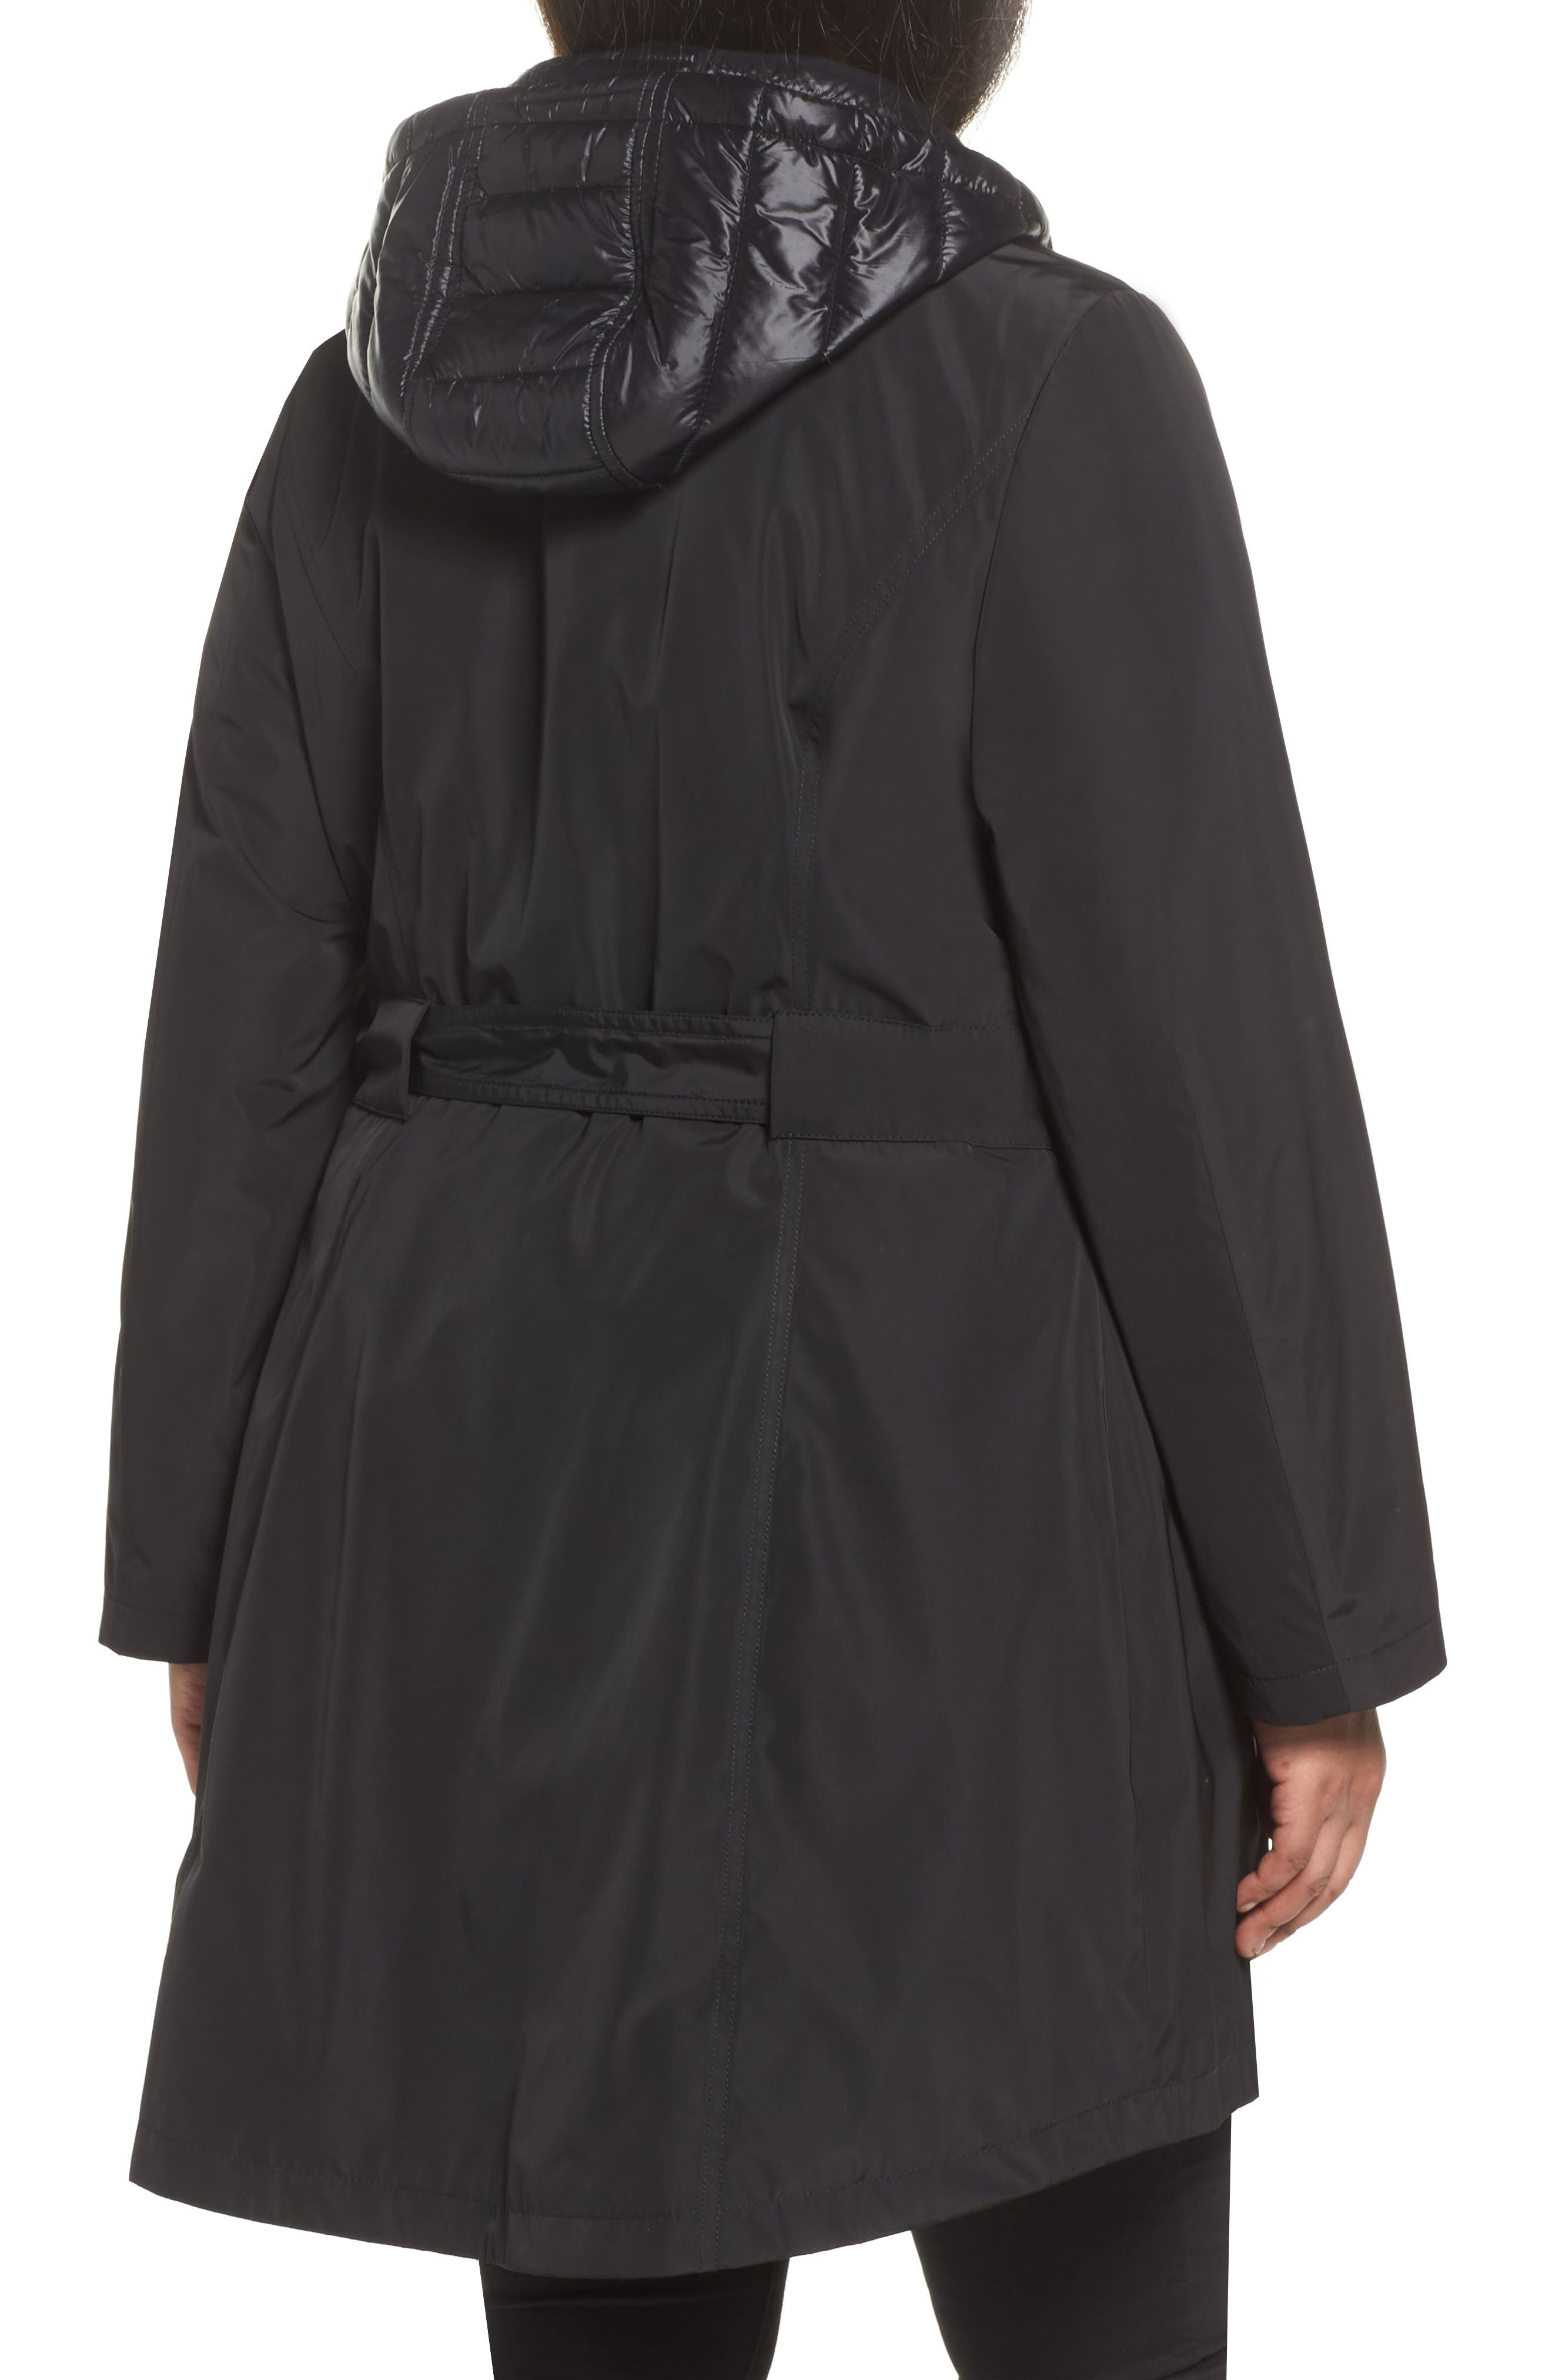 Alternate Image 2  - Laundry by Shelli Segal Water Resistant Hooded Coat with Puffer Bib Inset (Plus Size)